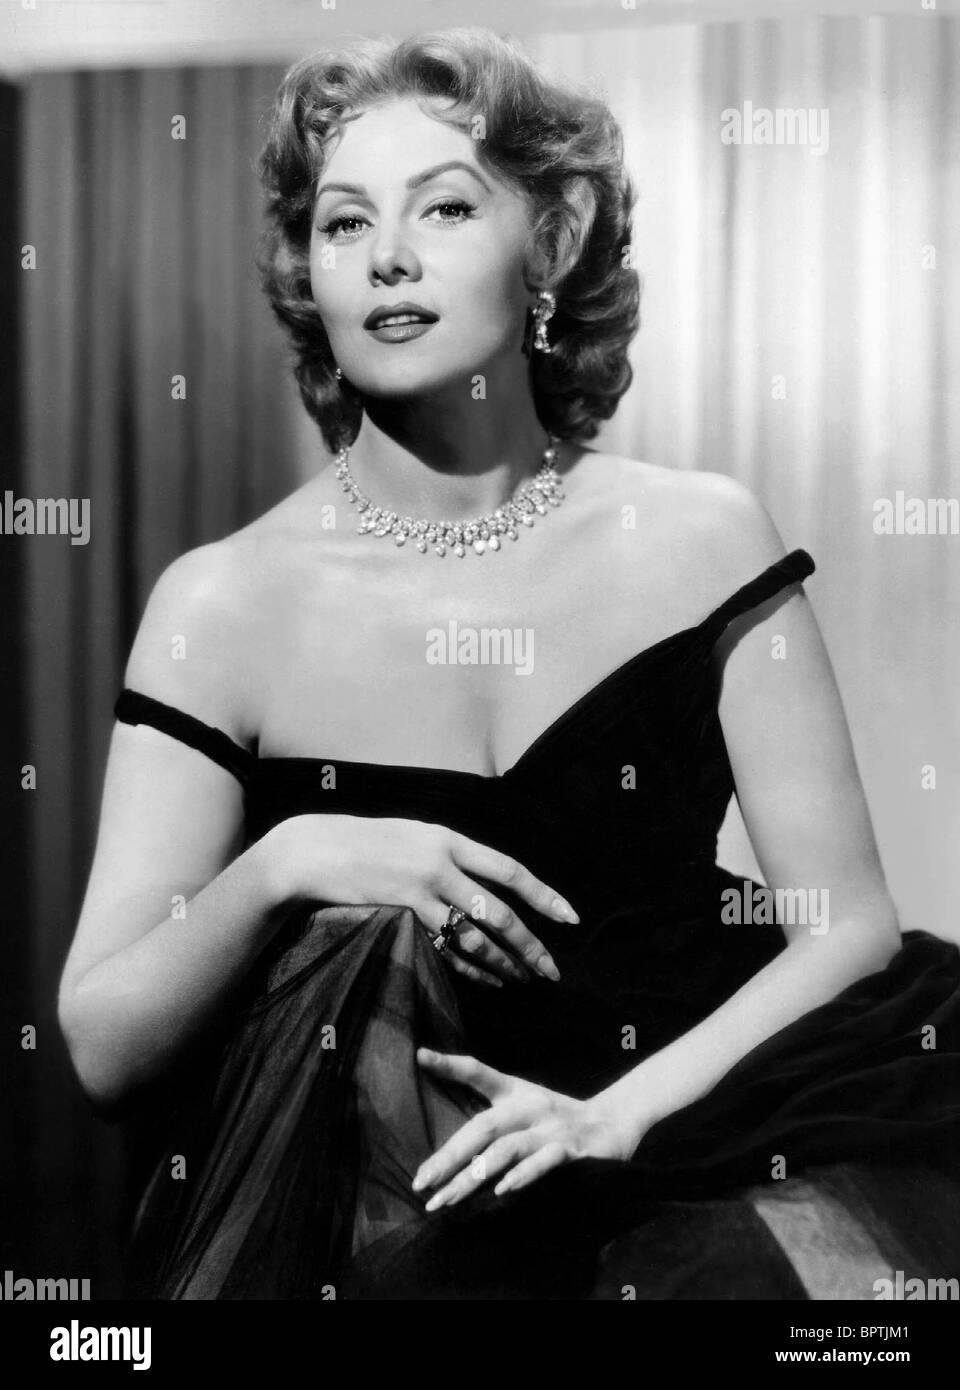 RHONDA FLEMING ACTRICE (1952) Photo Stock